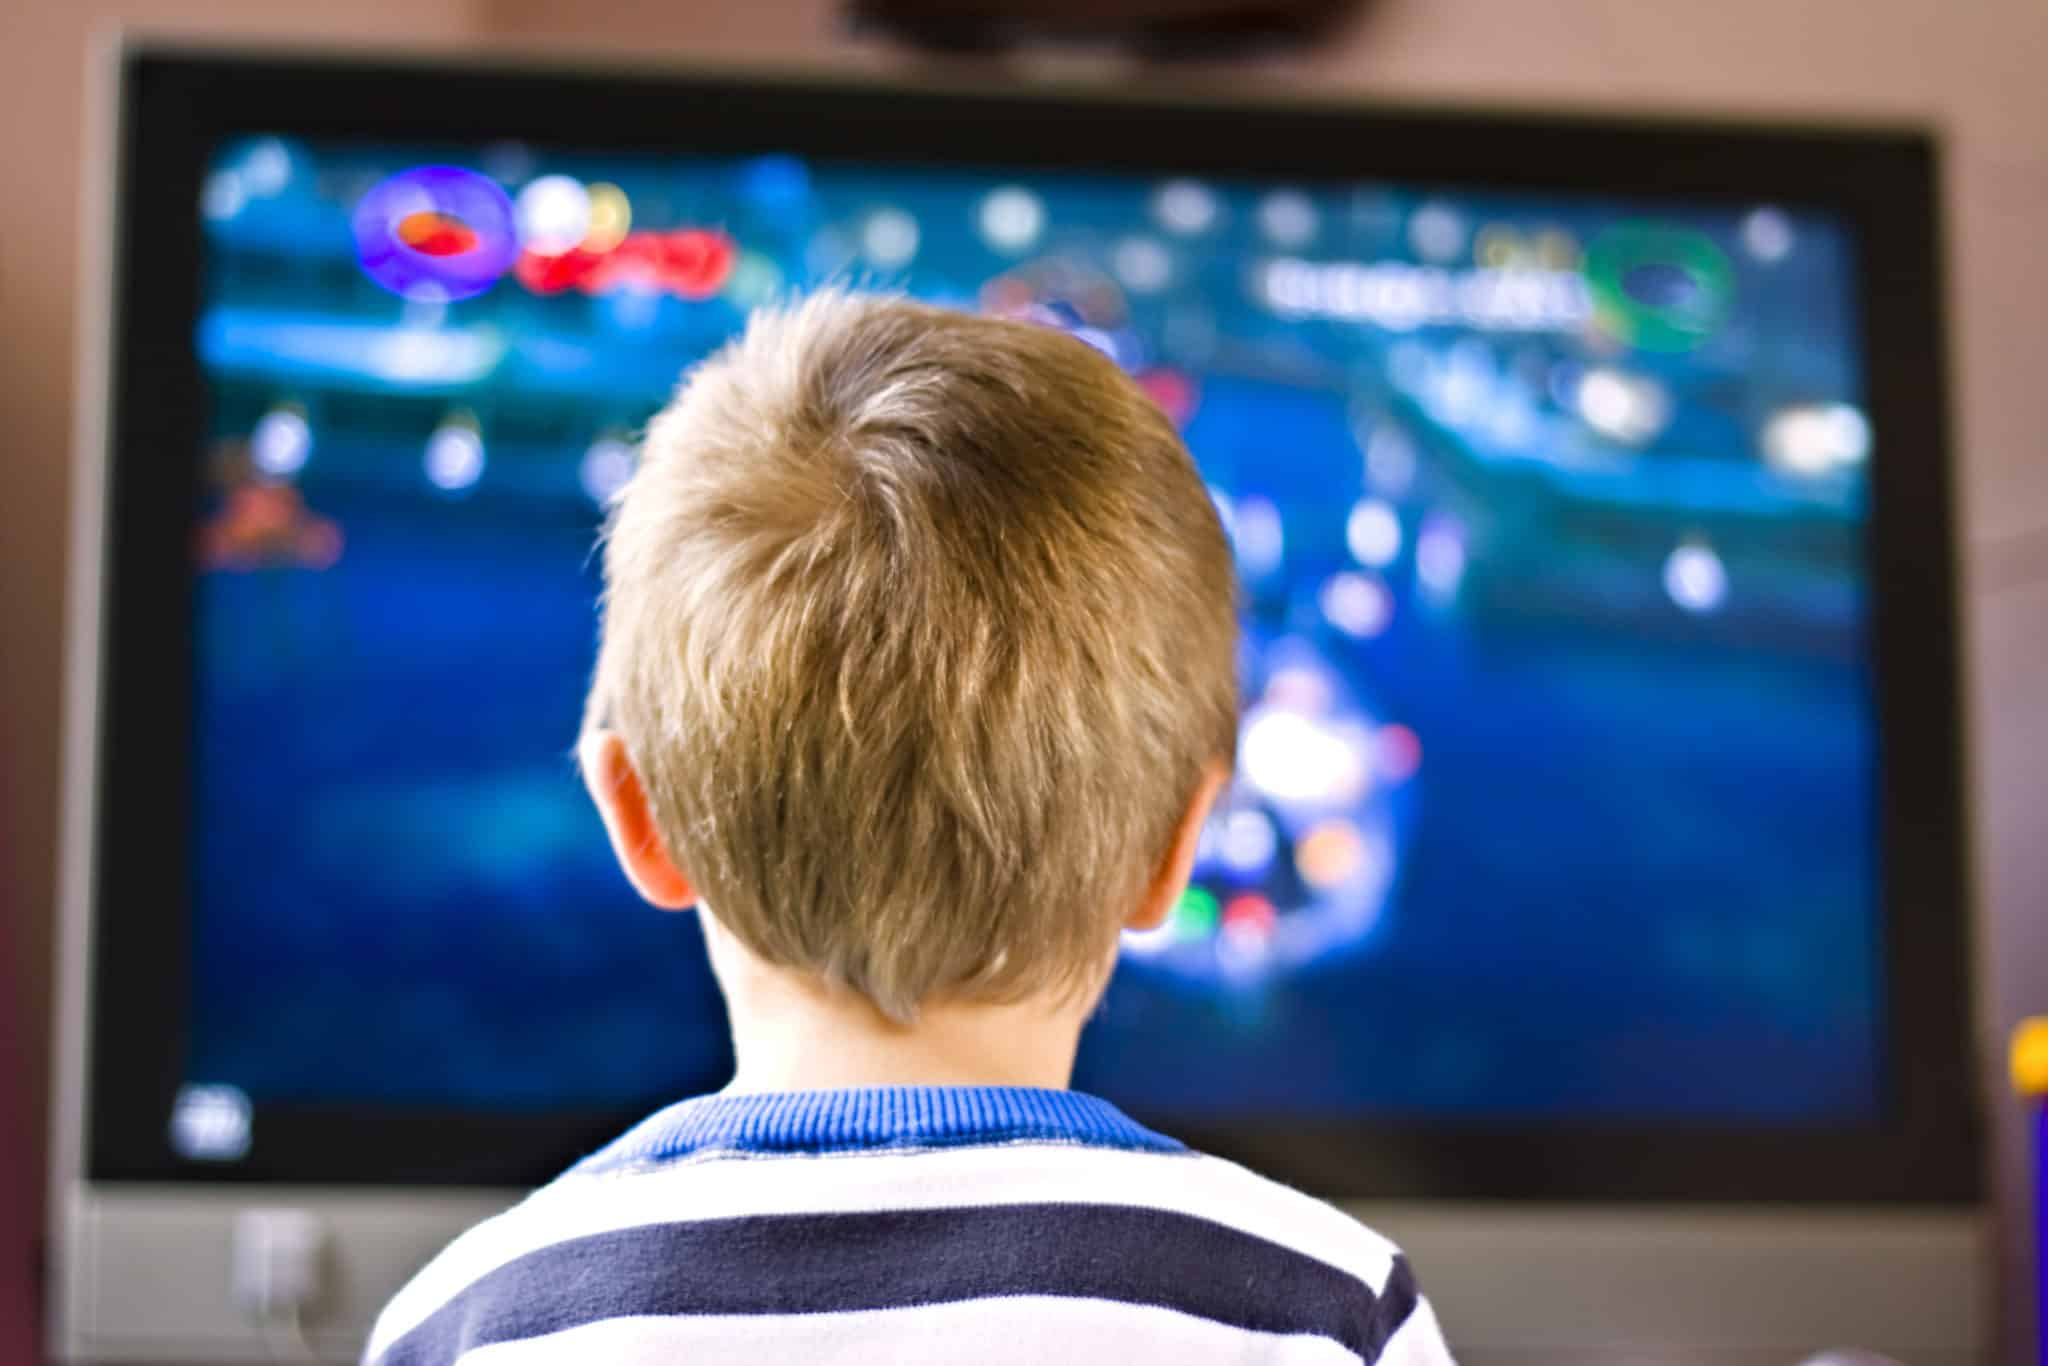 Child watching shows that promote language development